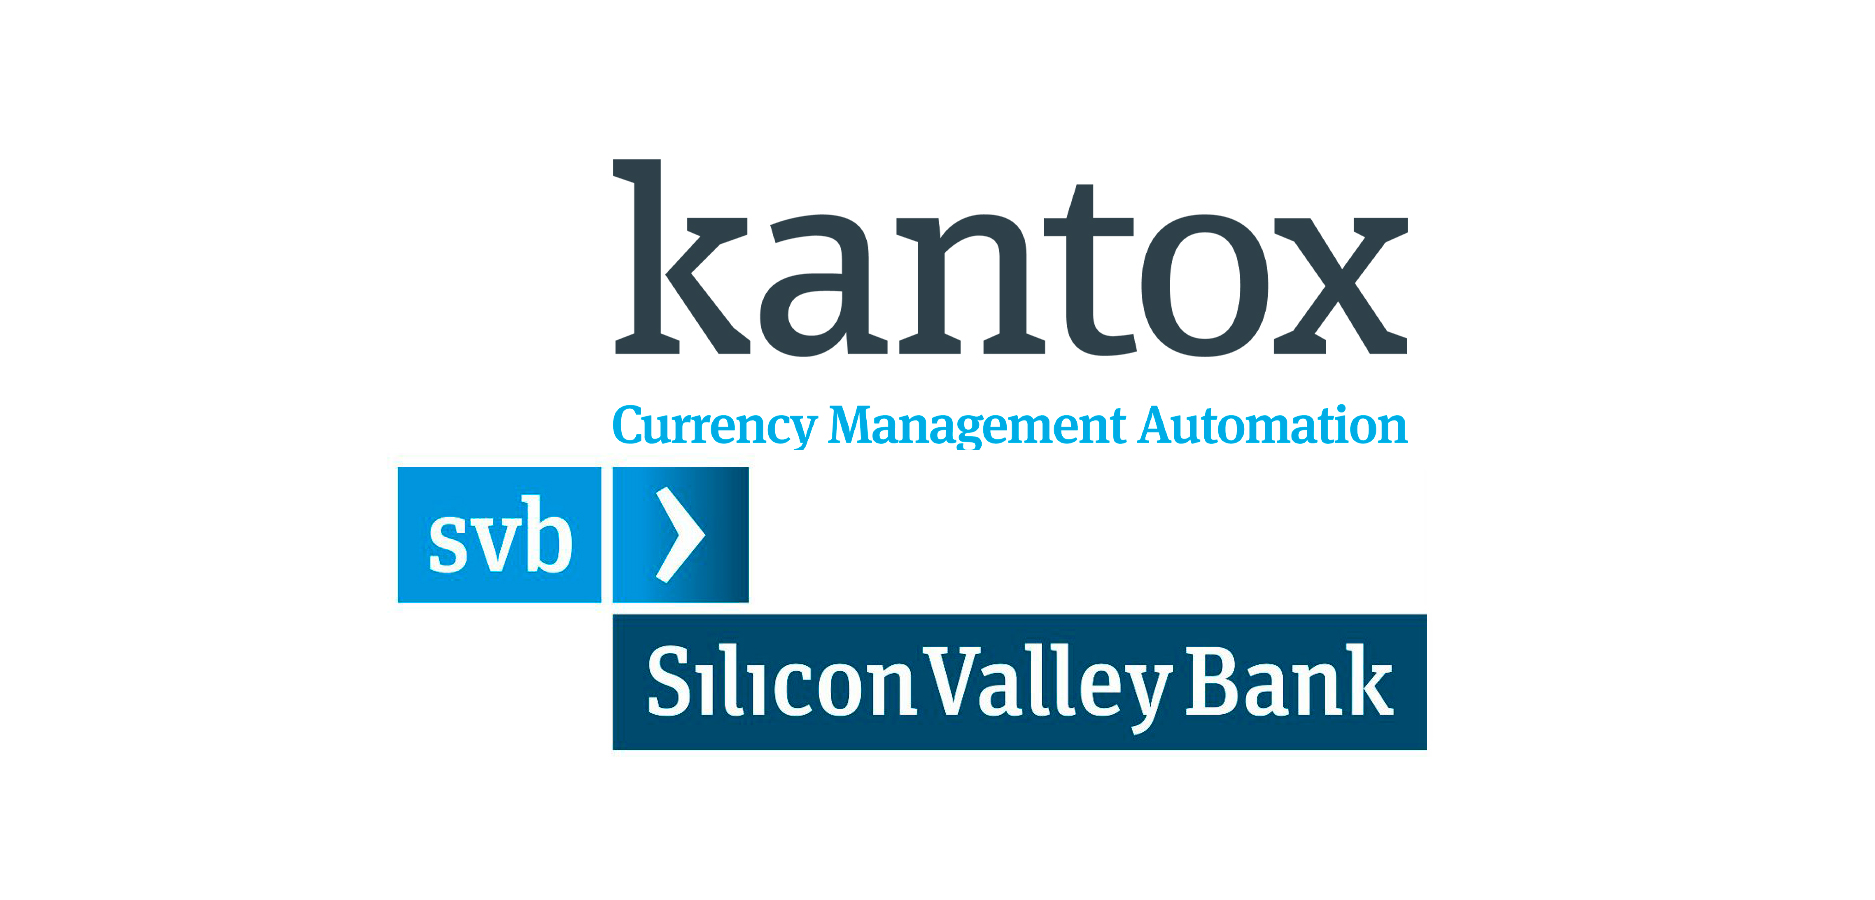 Kantox and Silicon Valley Bank Expand Partnership to Provide Innovative Currency Risk Management Technology to US Clients